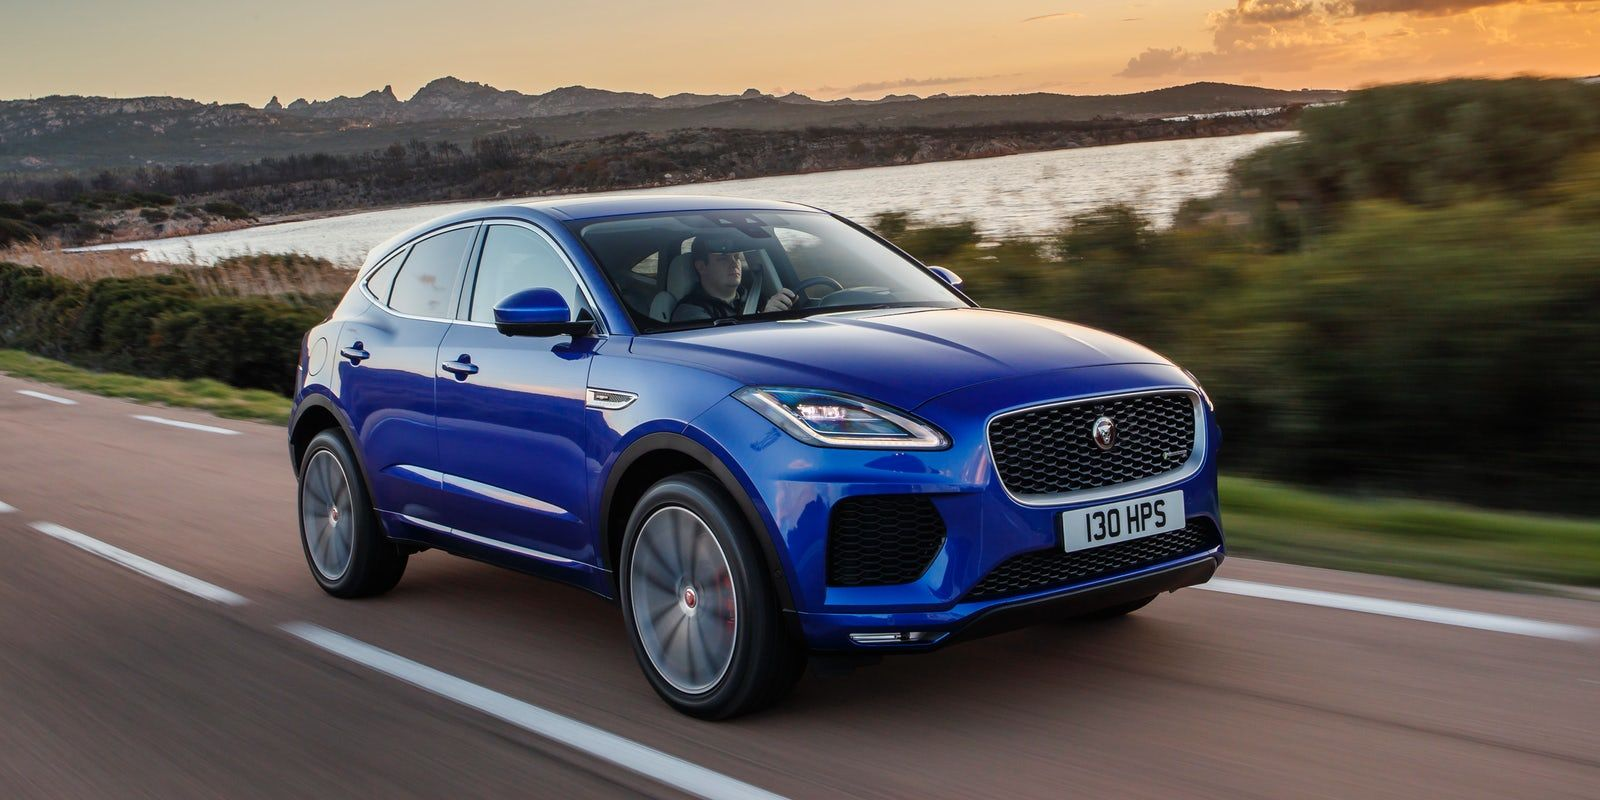 rivals of the Jaguar E-PACE